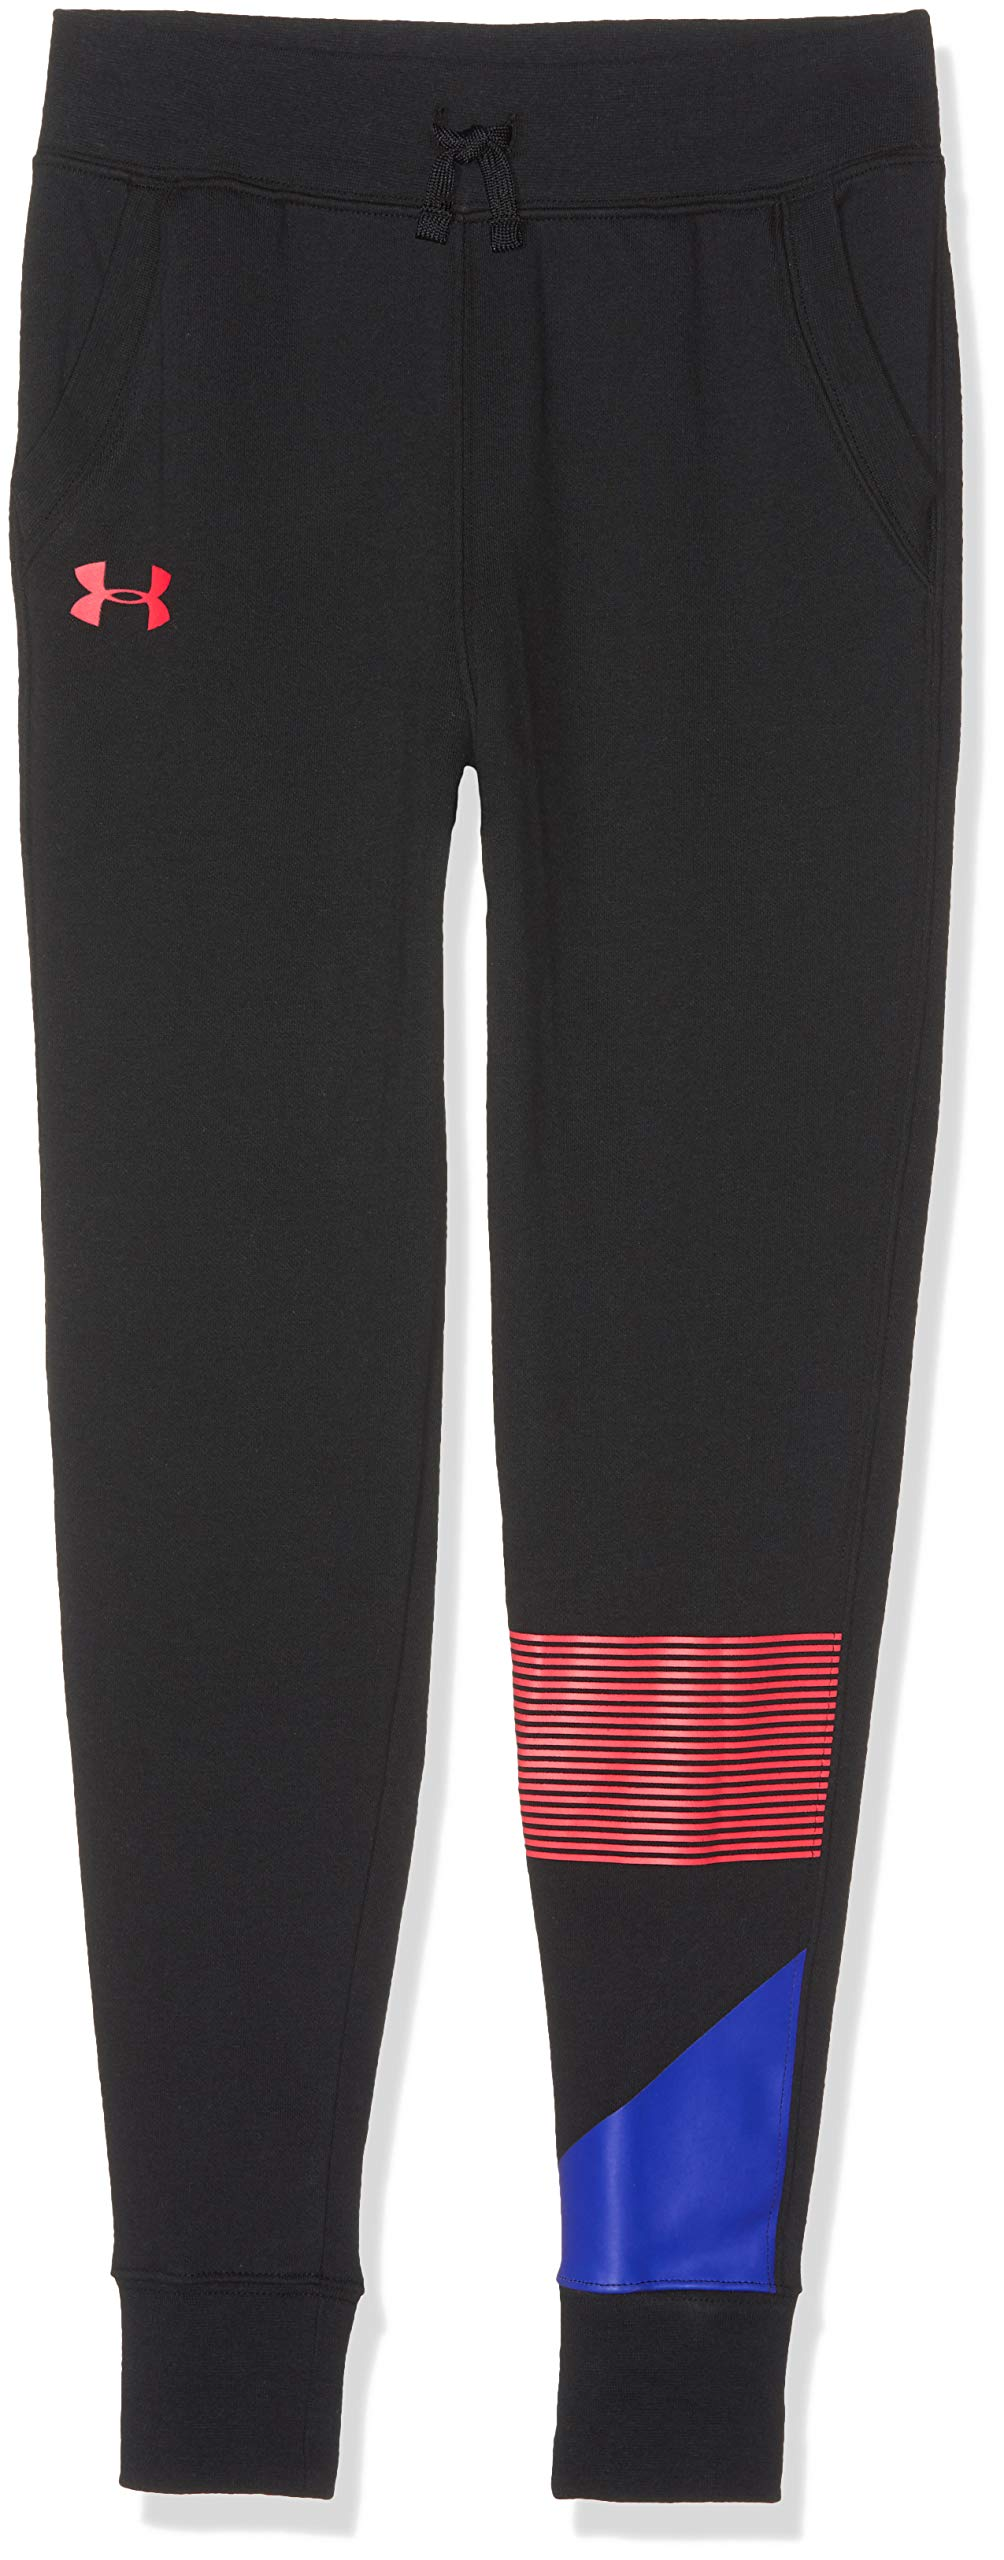 Under Armour Girls Rival Jogger, Black (002)/Penta Pink, Youth X-Small